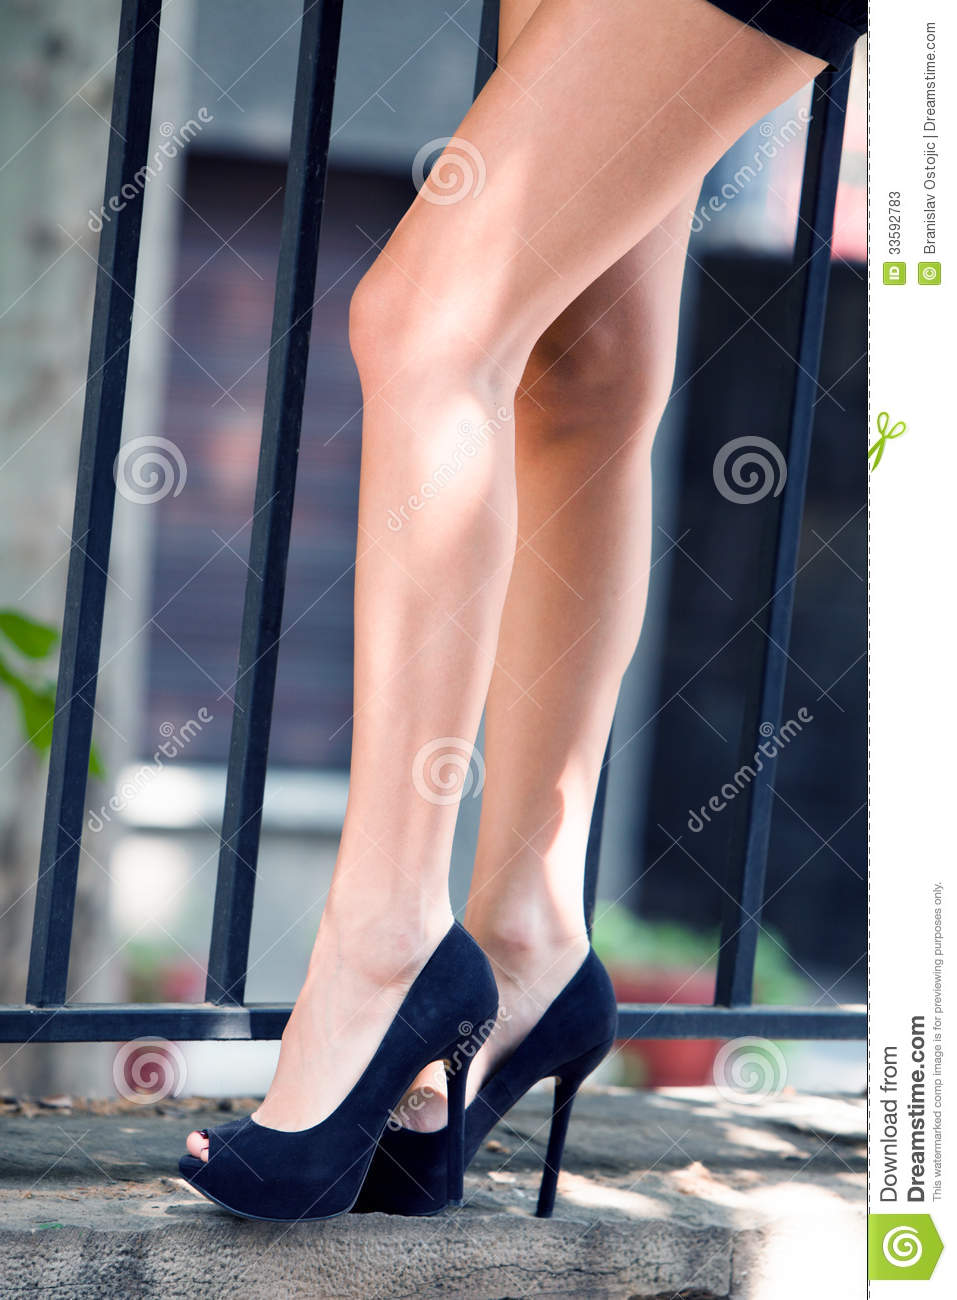 Long Legs In High Heels Stock Photos